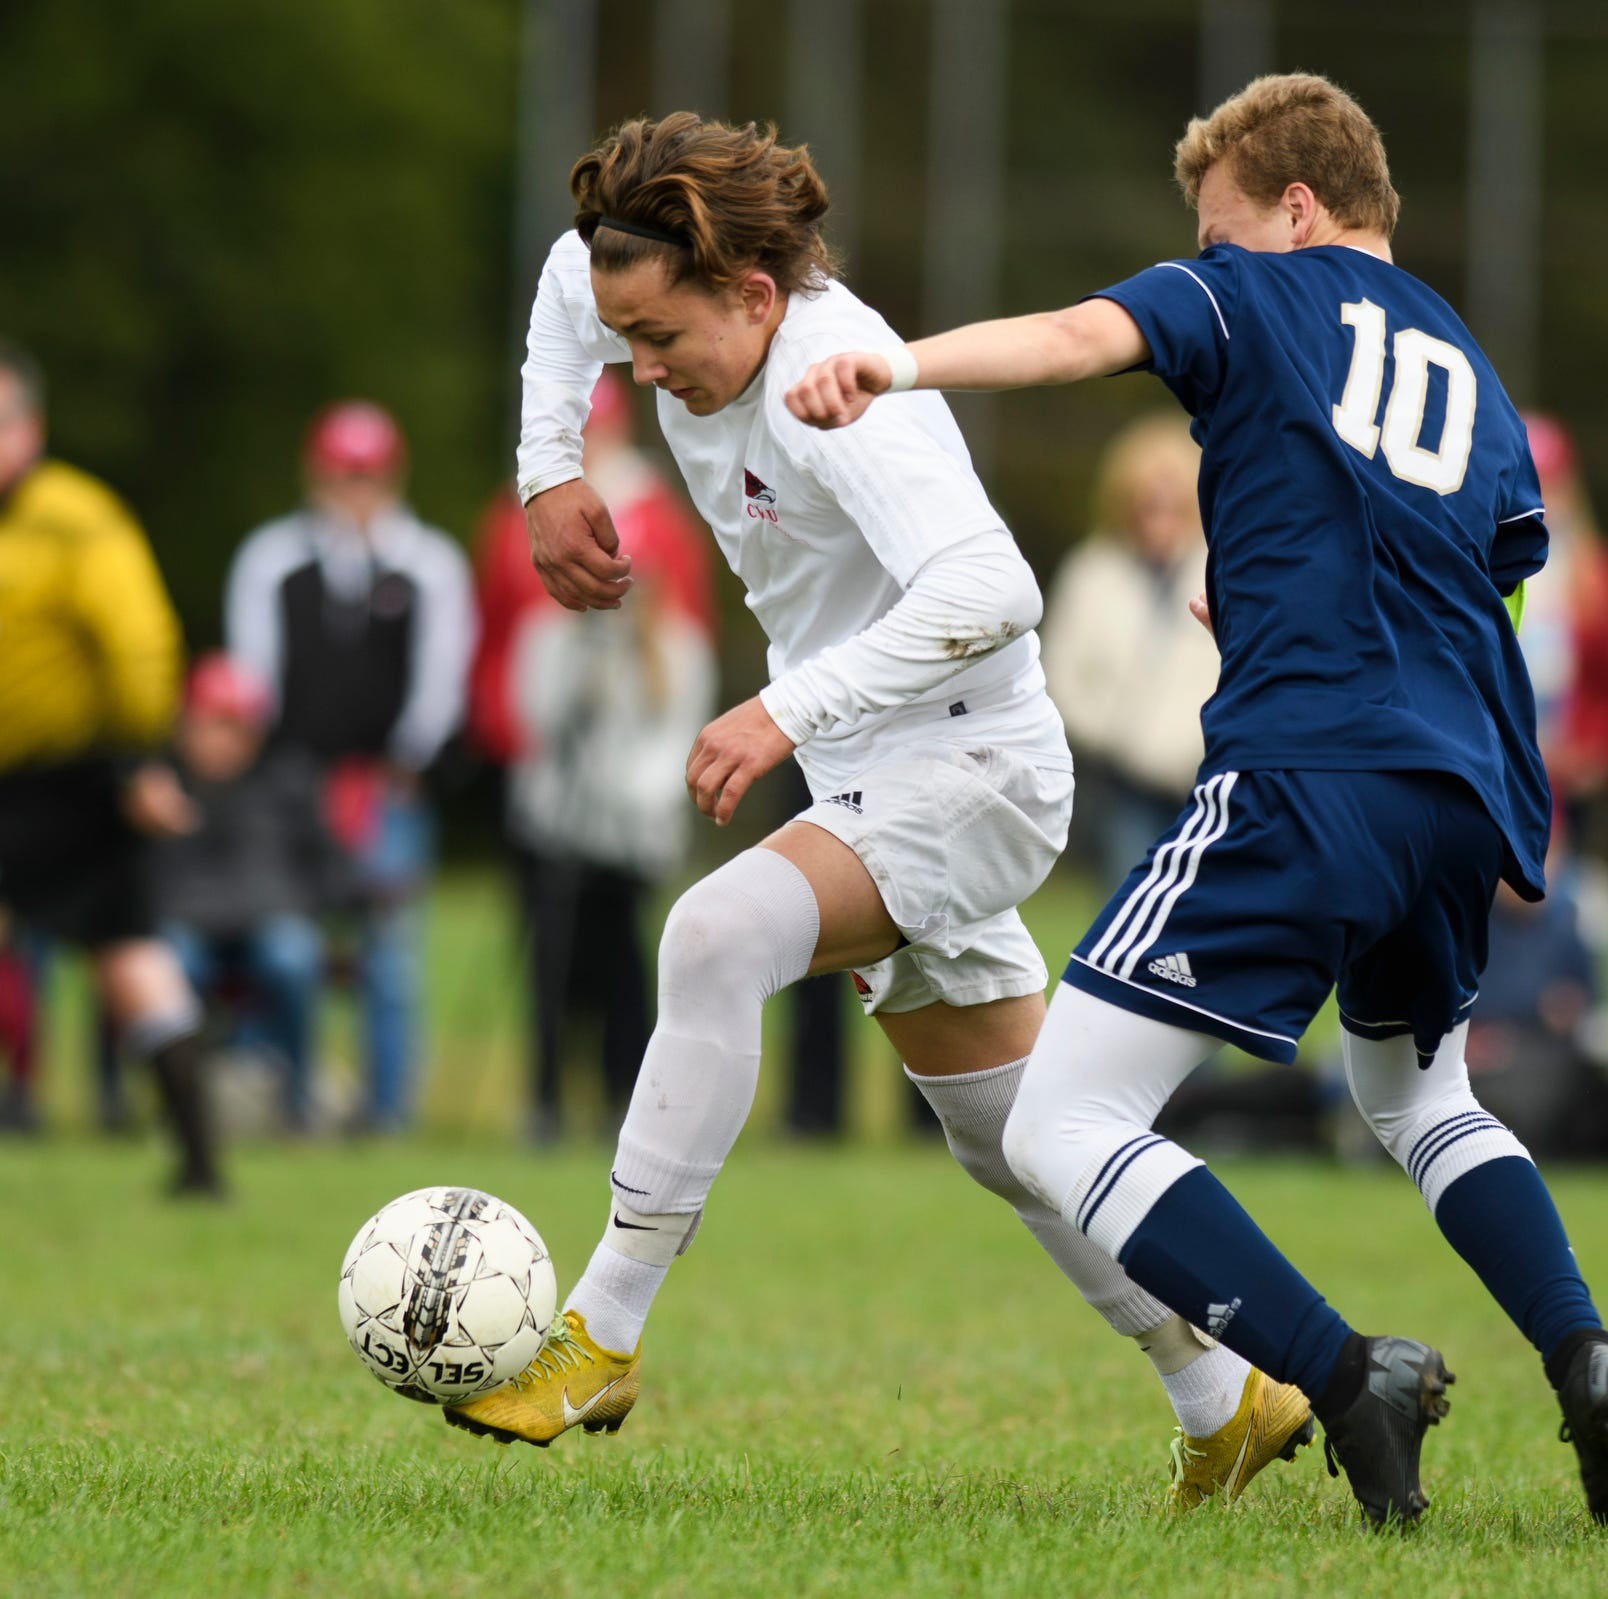 CVU's Caleb Martin (11) runs past Essex's Peter Osiecki (10) with the ball during the boys soccer game between the Champlain Valley Union Redhawks and the Essex Hornets at Essex High School on Saturday morning September 22, 2018 in Essex. (BRIAN JENKINS/for the FREE PRESS)